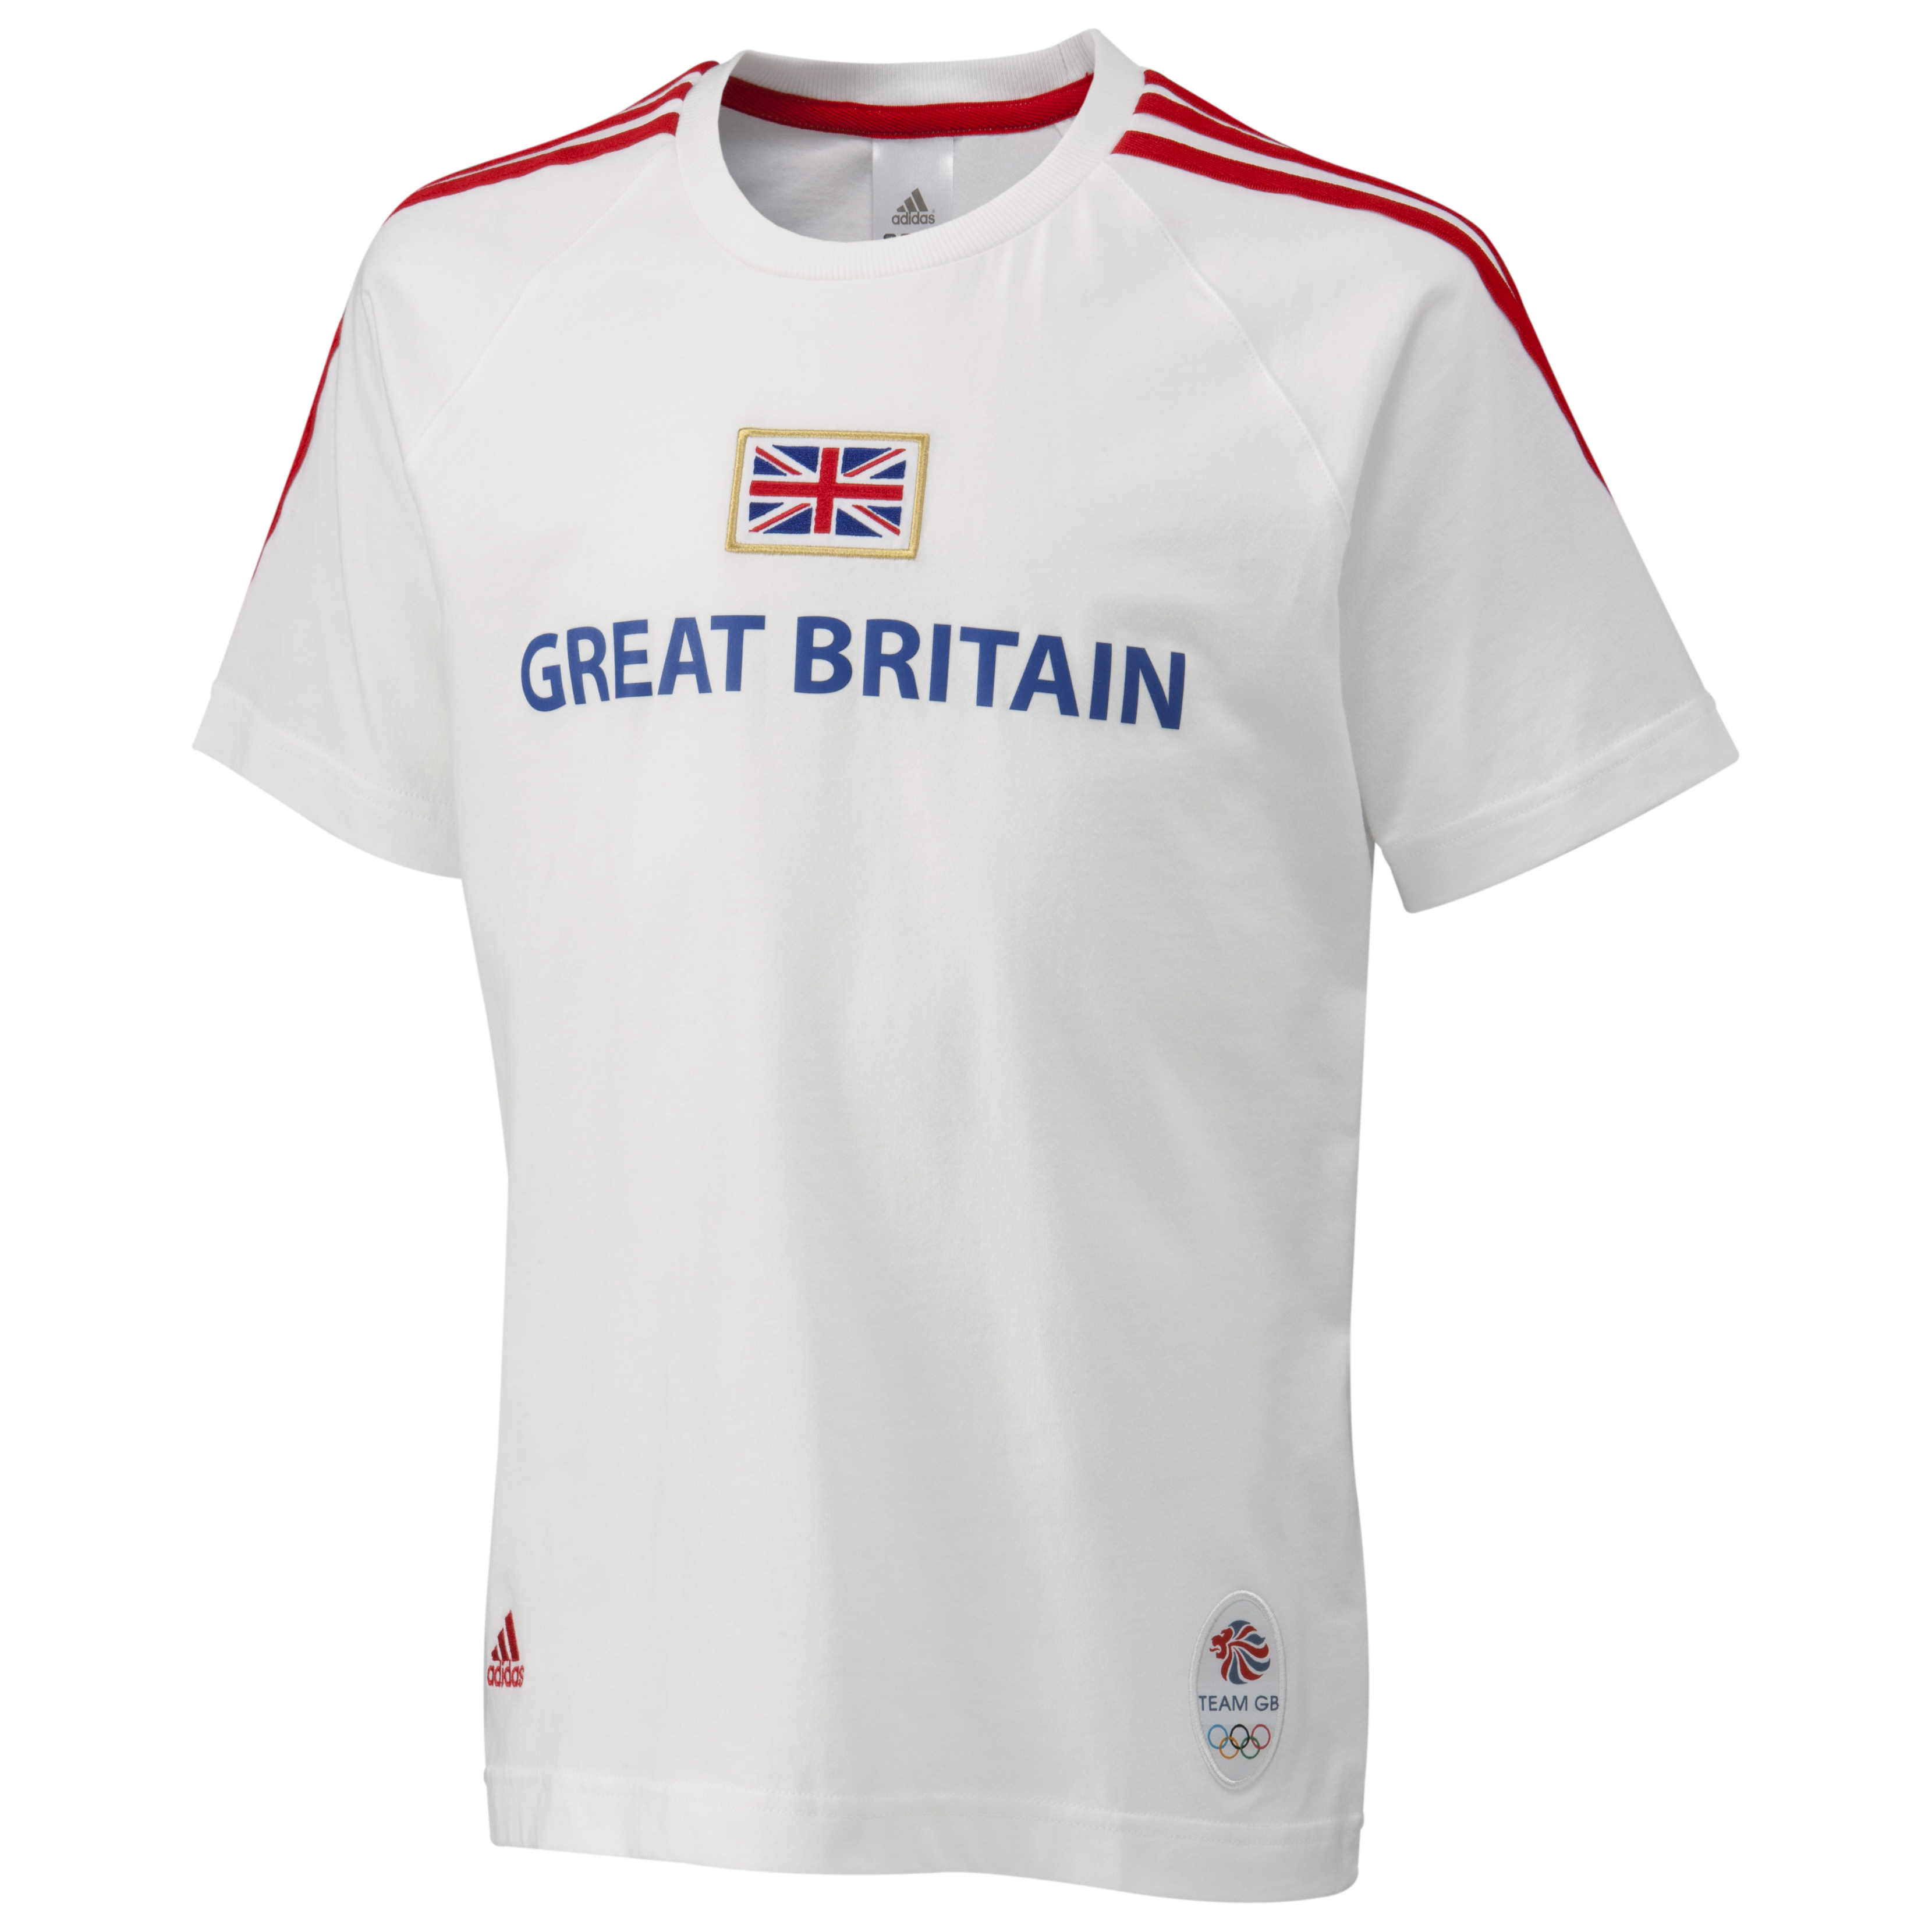 adidas Team GB T-Shirt - White/Victory Blue S07/Vivid Red F04 - Kids